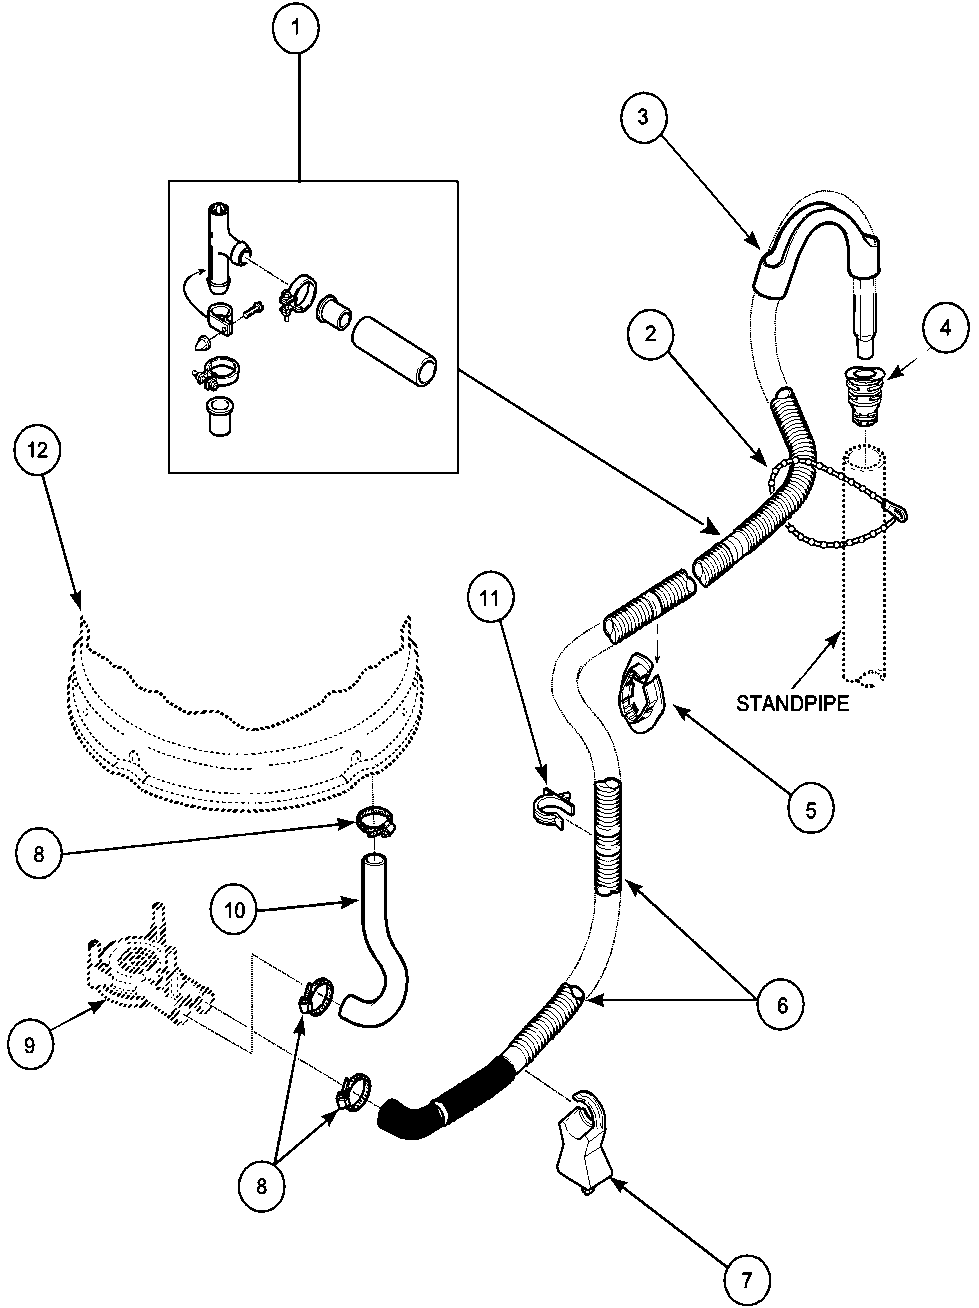 Lwa40aw2 top loading washer drain hose and siphon break parts diagram